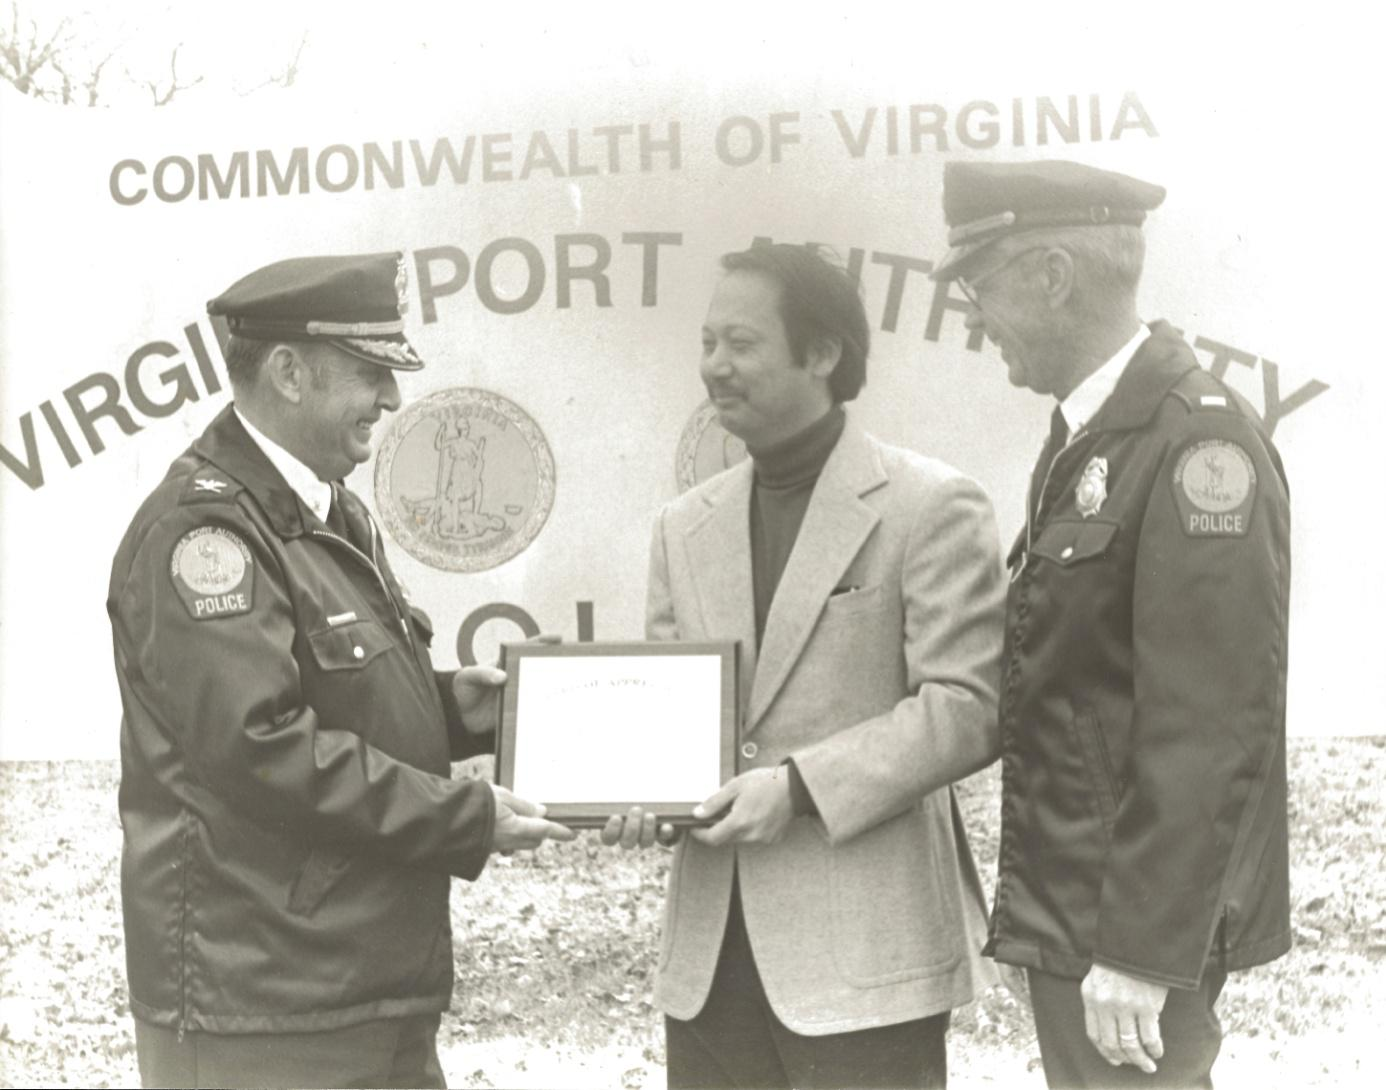 Chief Collier, Virginia Port Authority